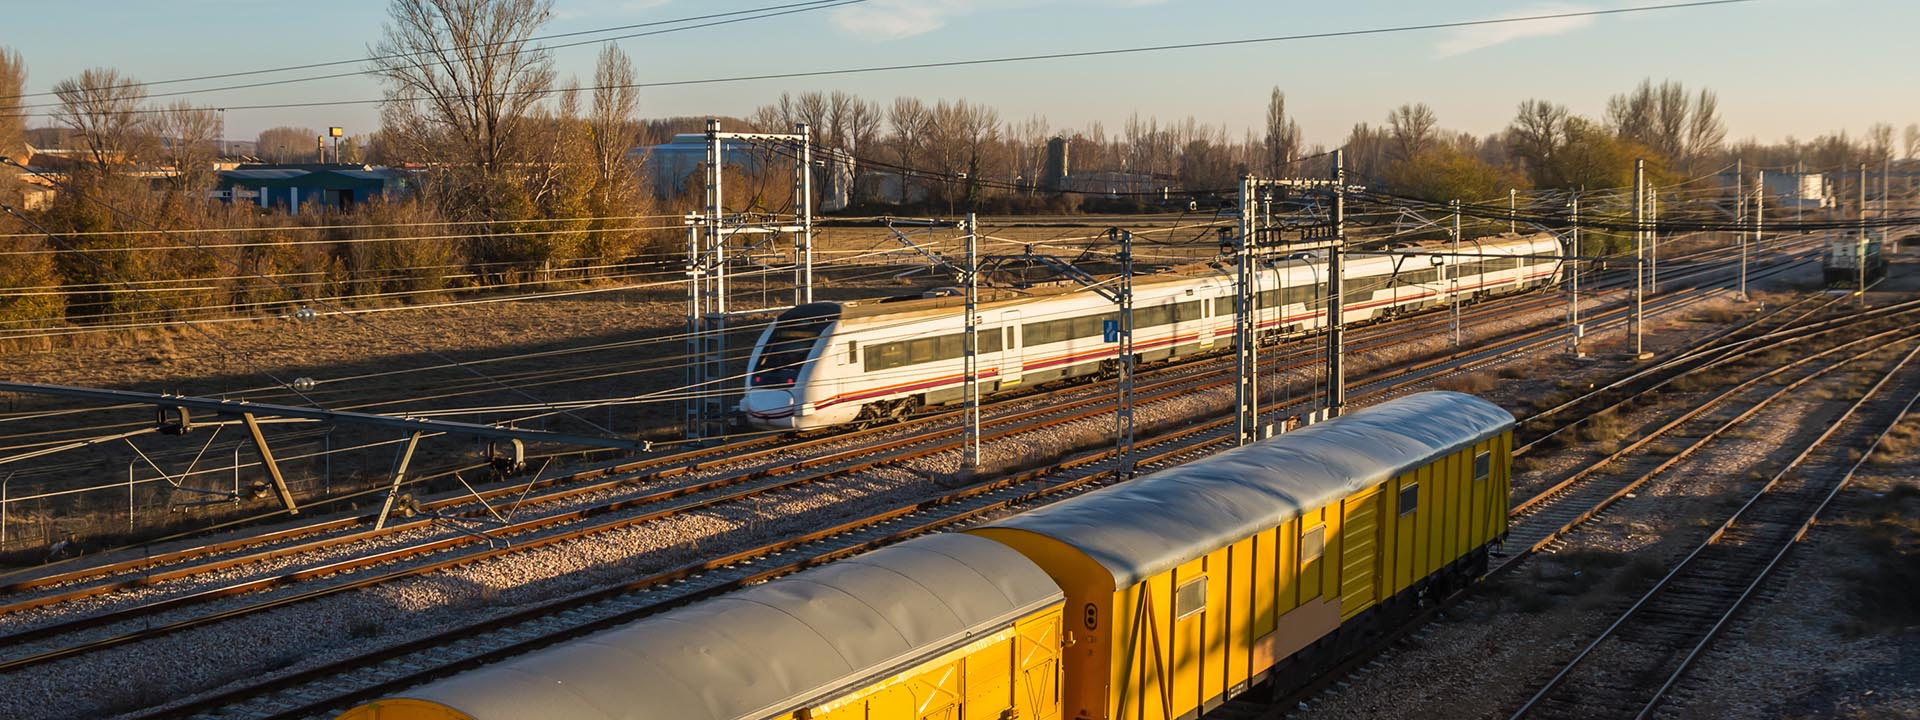 Ricardo expertise supporting upgrades across the Spanish rail network